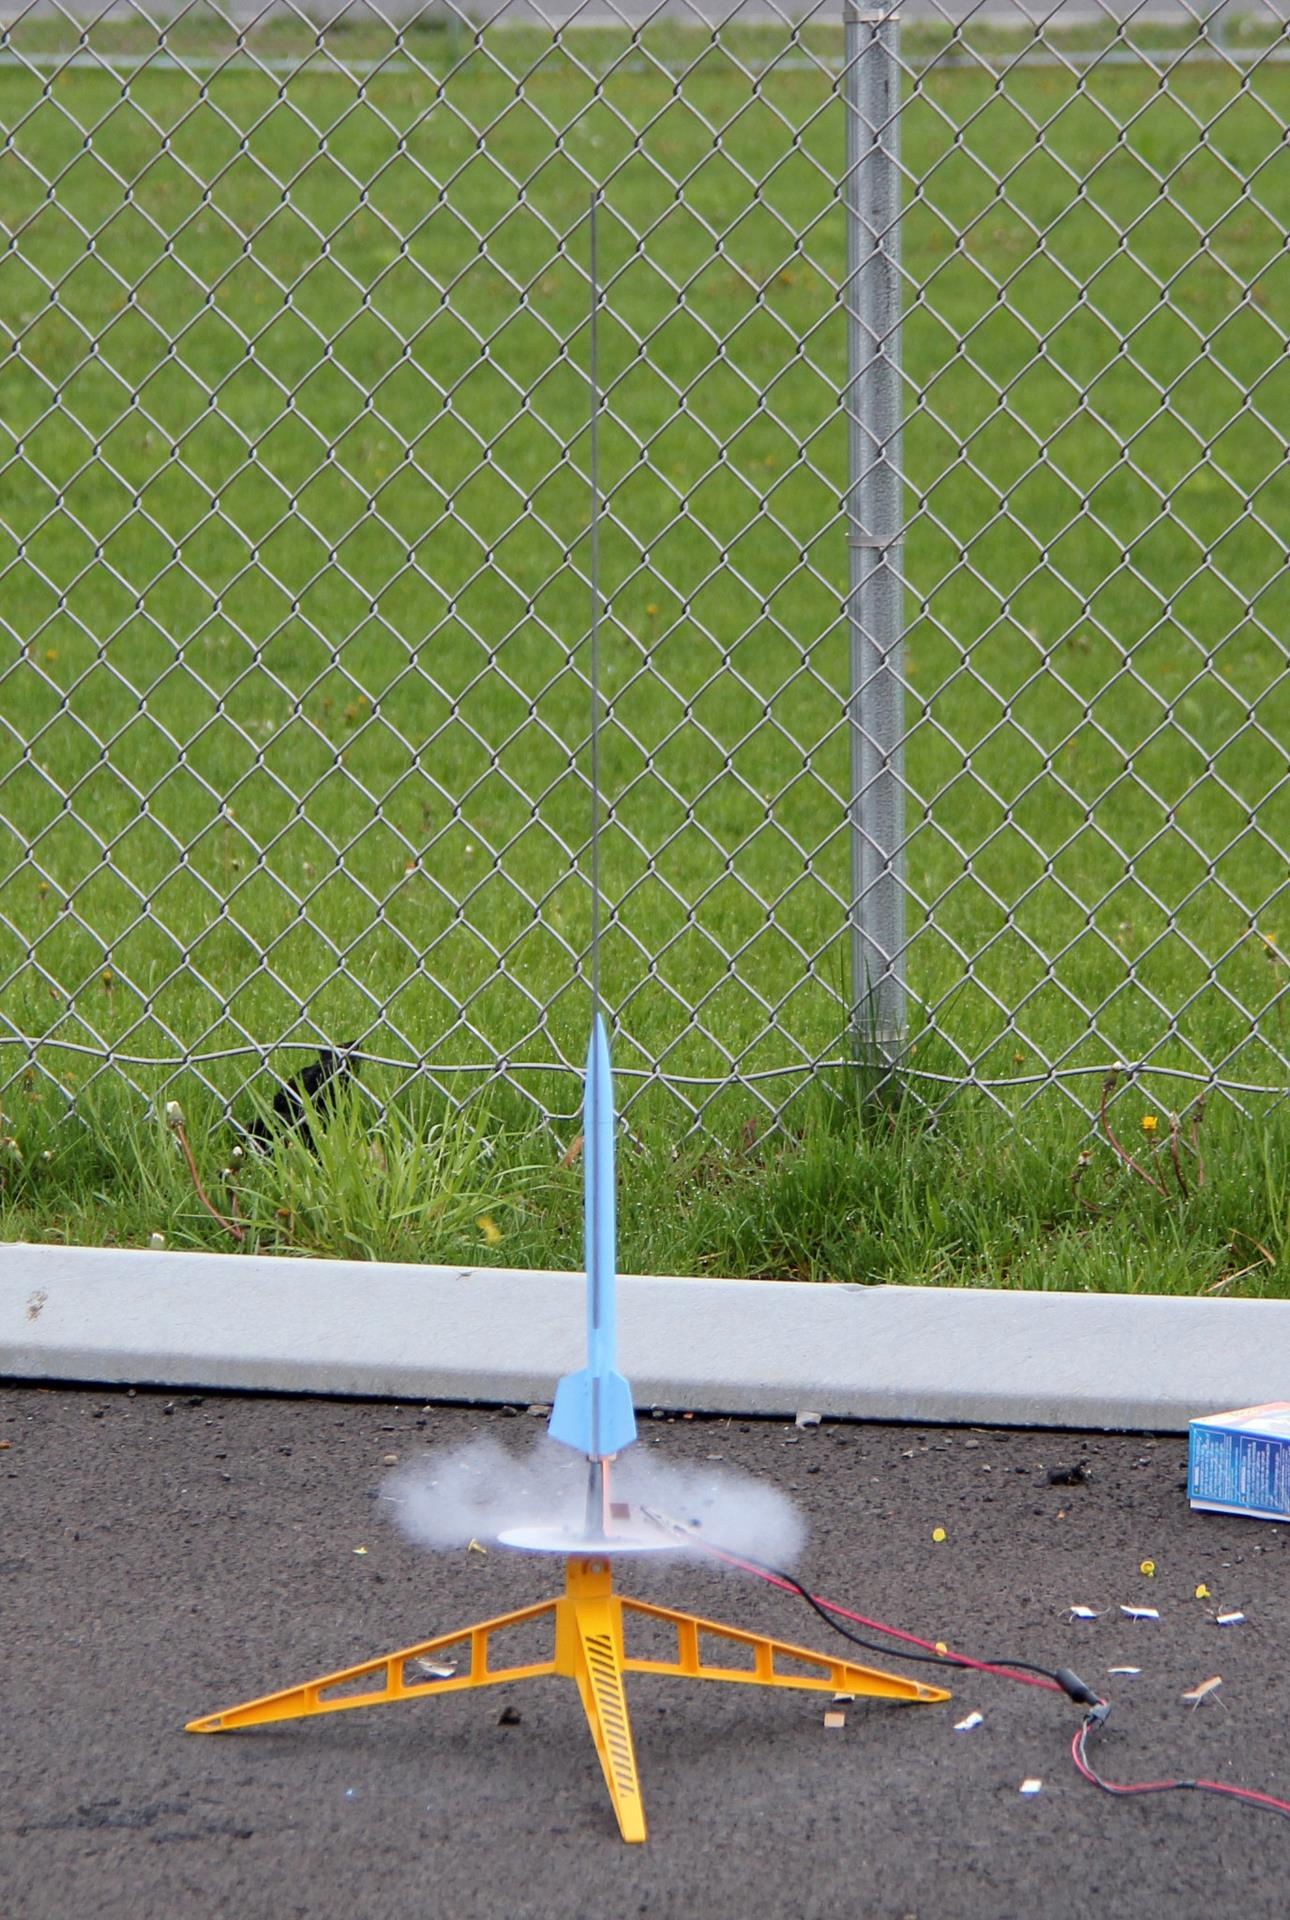 blue model rocket beginning to lift off from launch pad